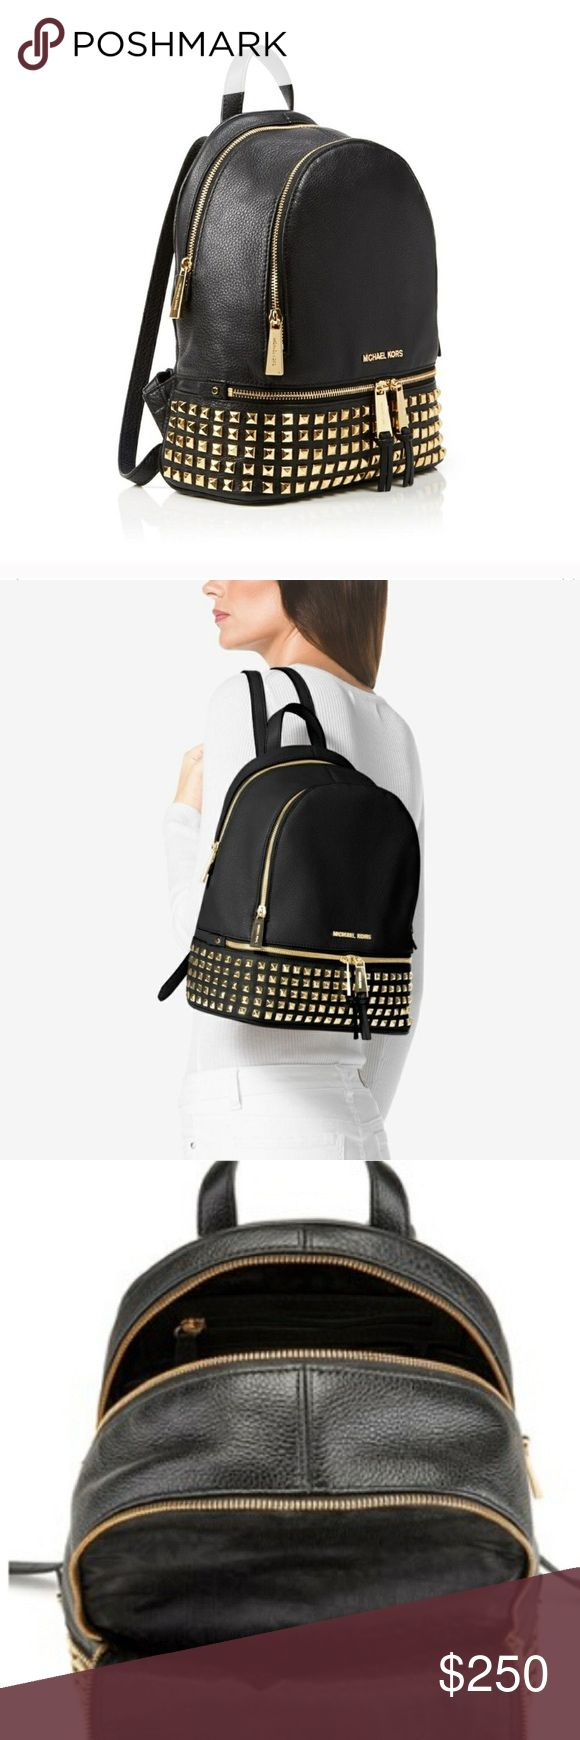 *4TRADE* Michael Kors Rhea Gold Stud Backpack NWOT NWOT Michael Kors Rhea Gold Studded Backpack. Medium size. Authentic. New w/o tags or dust bag. Only wore to try on once! Priced high; looking to **TRADE ONLY** for the same or similar (new or like new) MK Rhea backpack in size SMALL or XS or MINI in black, black/gold, or black/silver + $ difference. *Bundle deal not applicable* Michael Kors Bags Backpacks